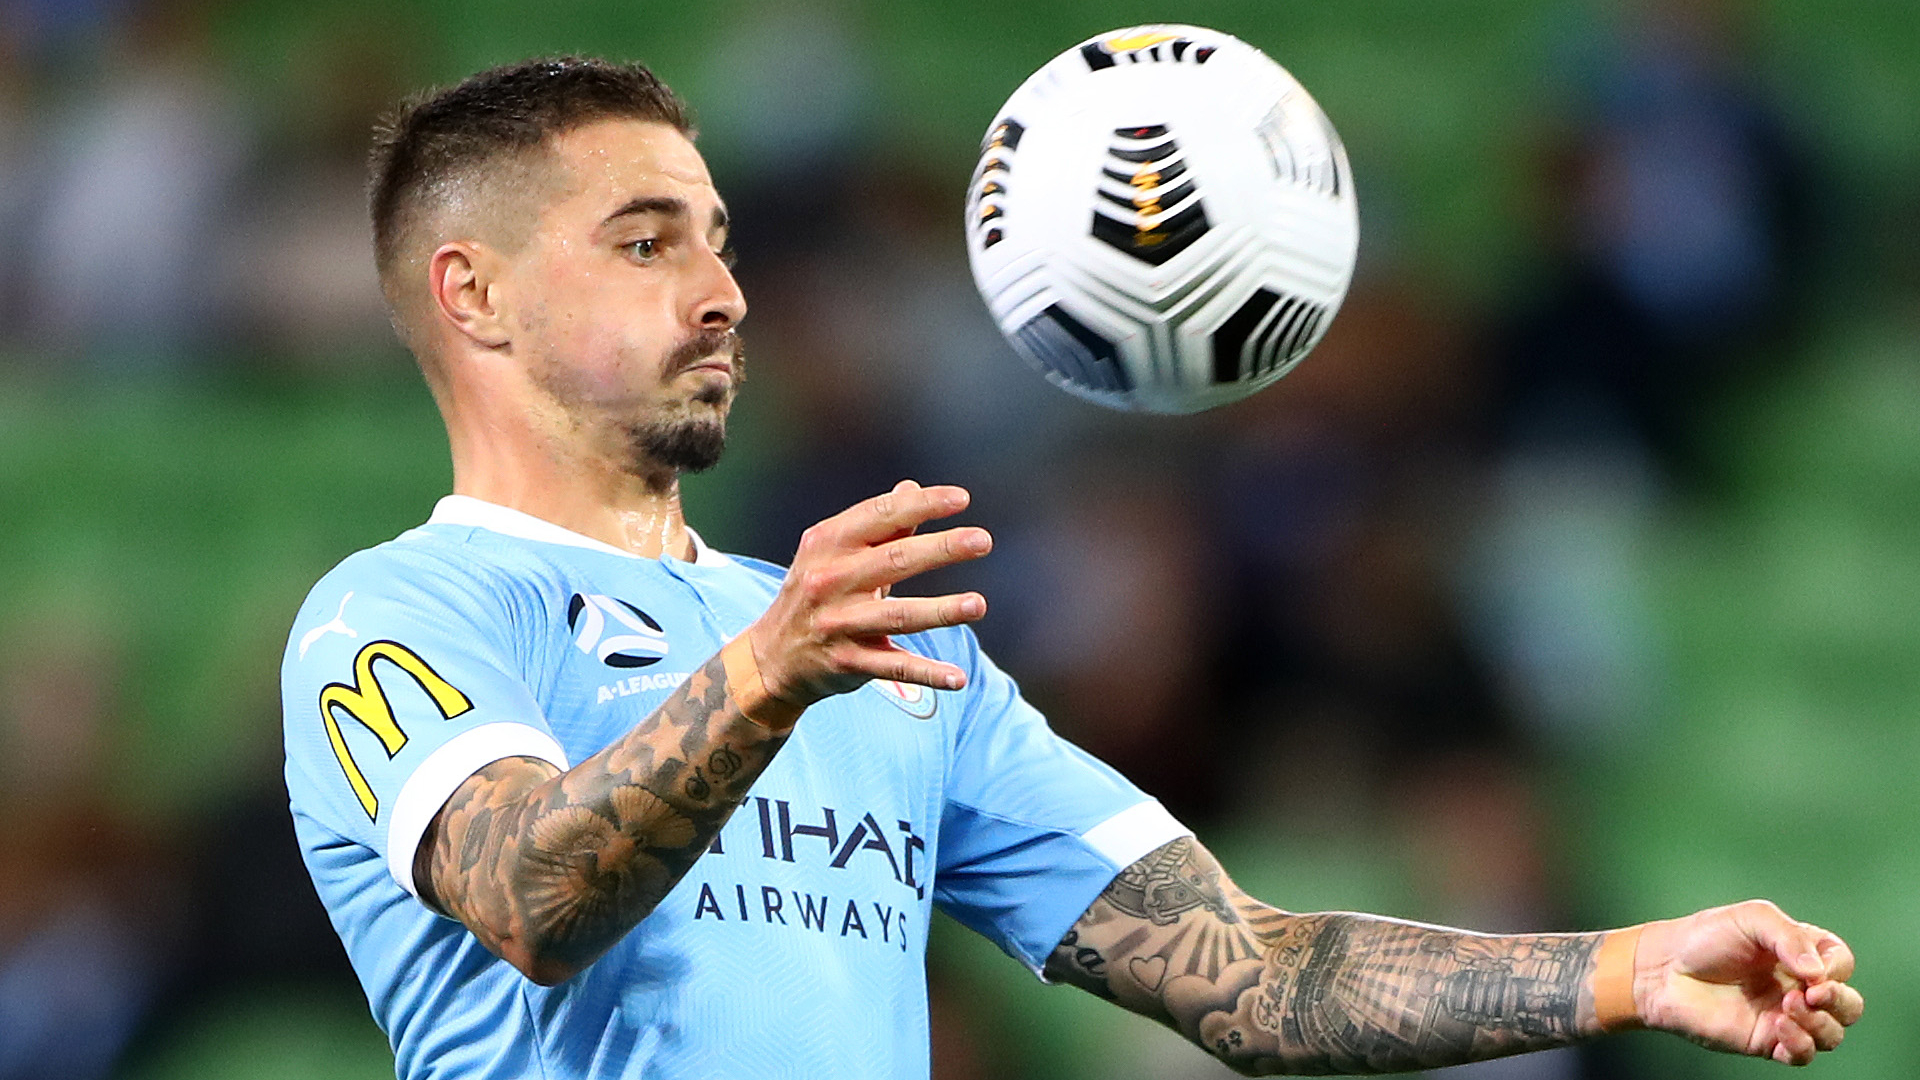 Melbourne City 3-2 Sydney FC: Maclaren double ends slump despite fightback